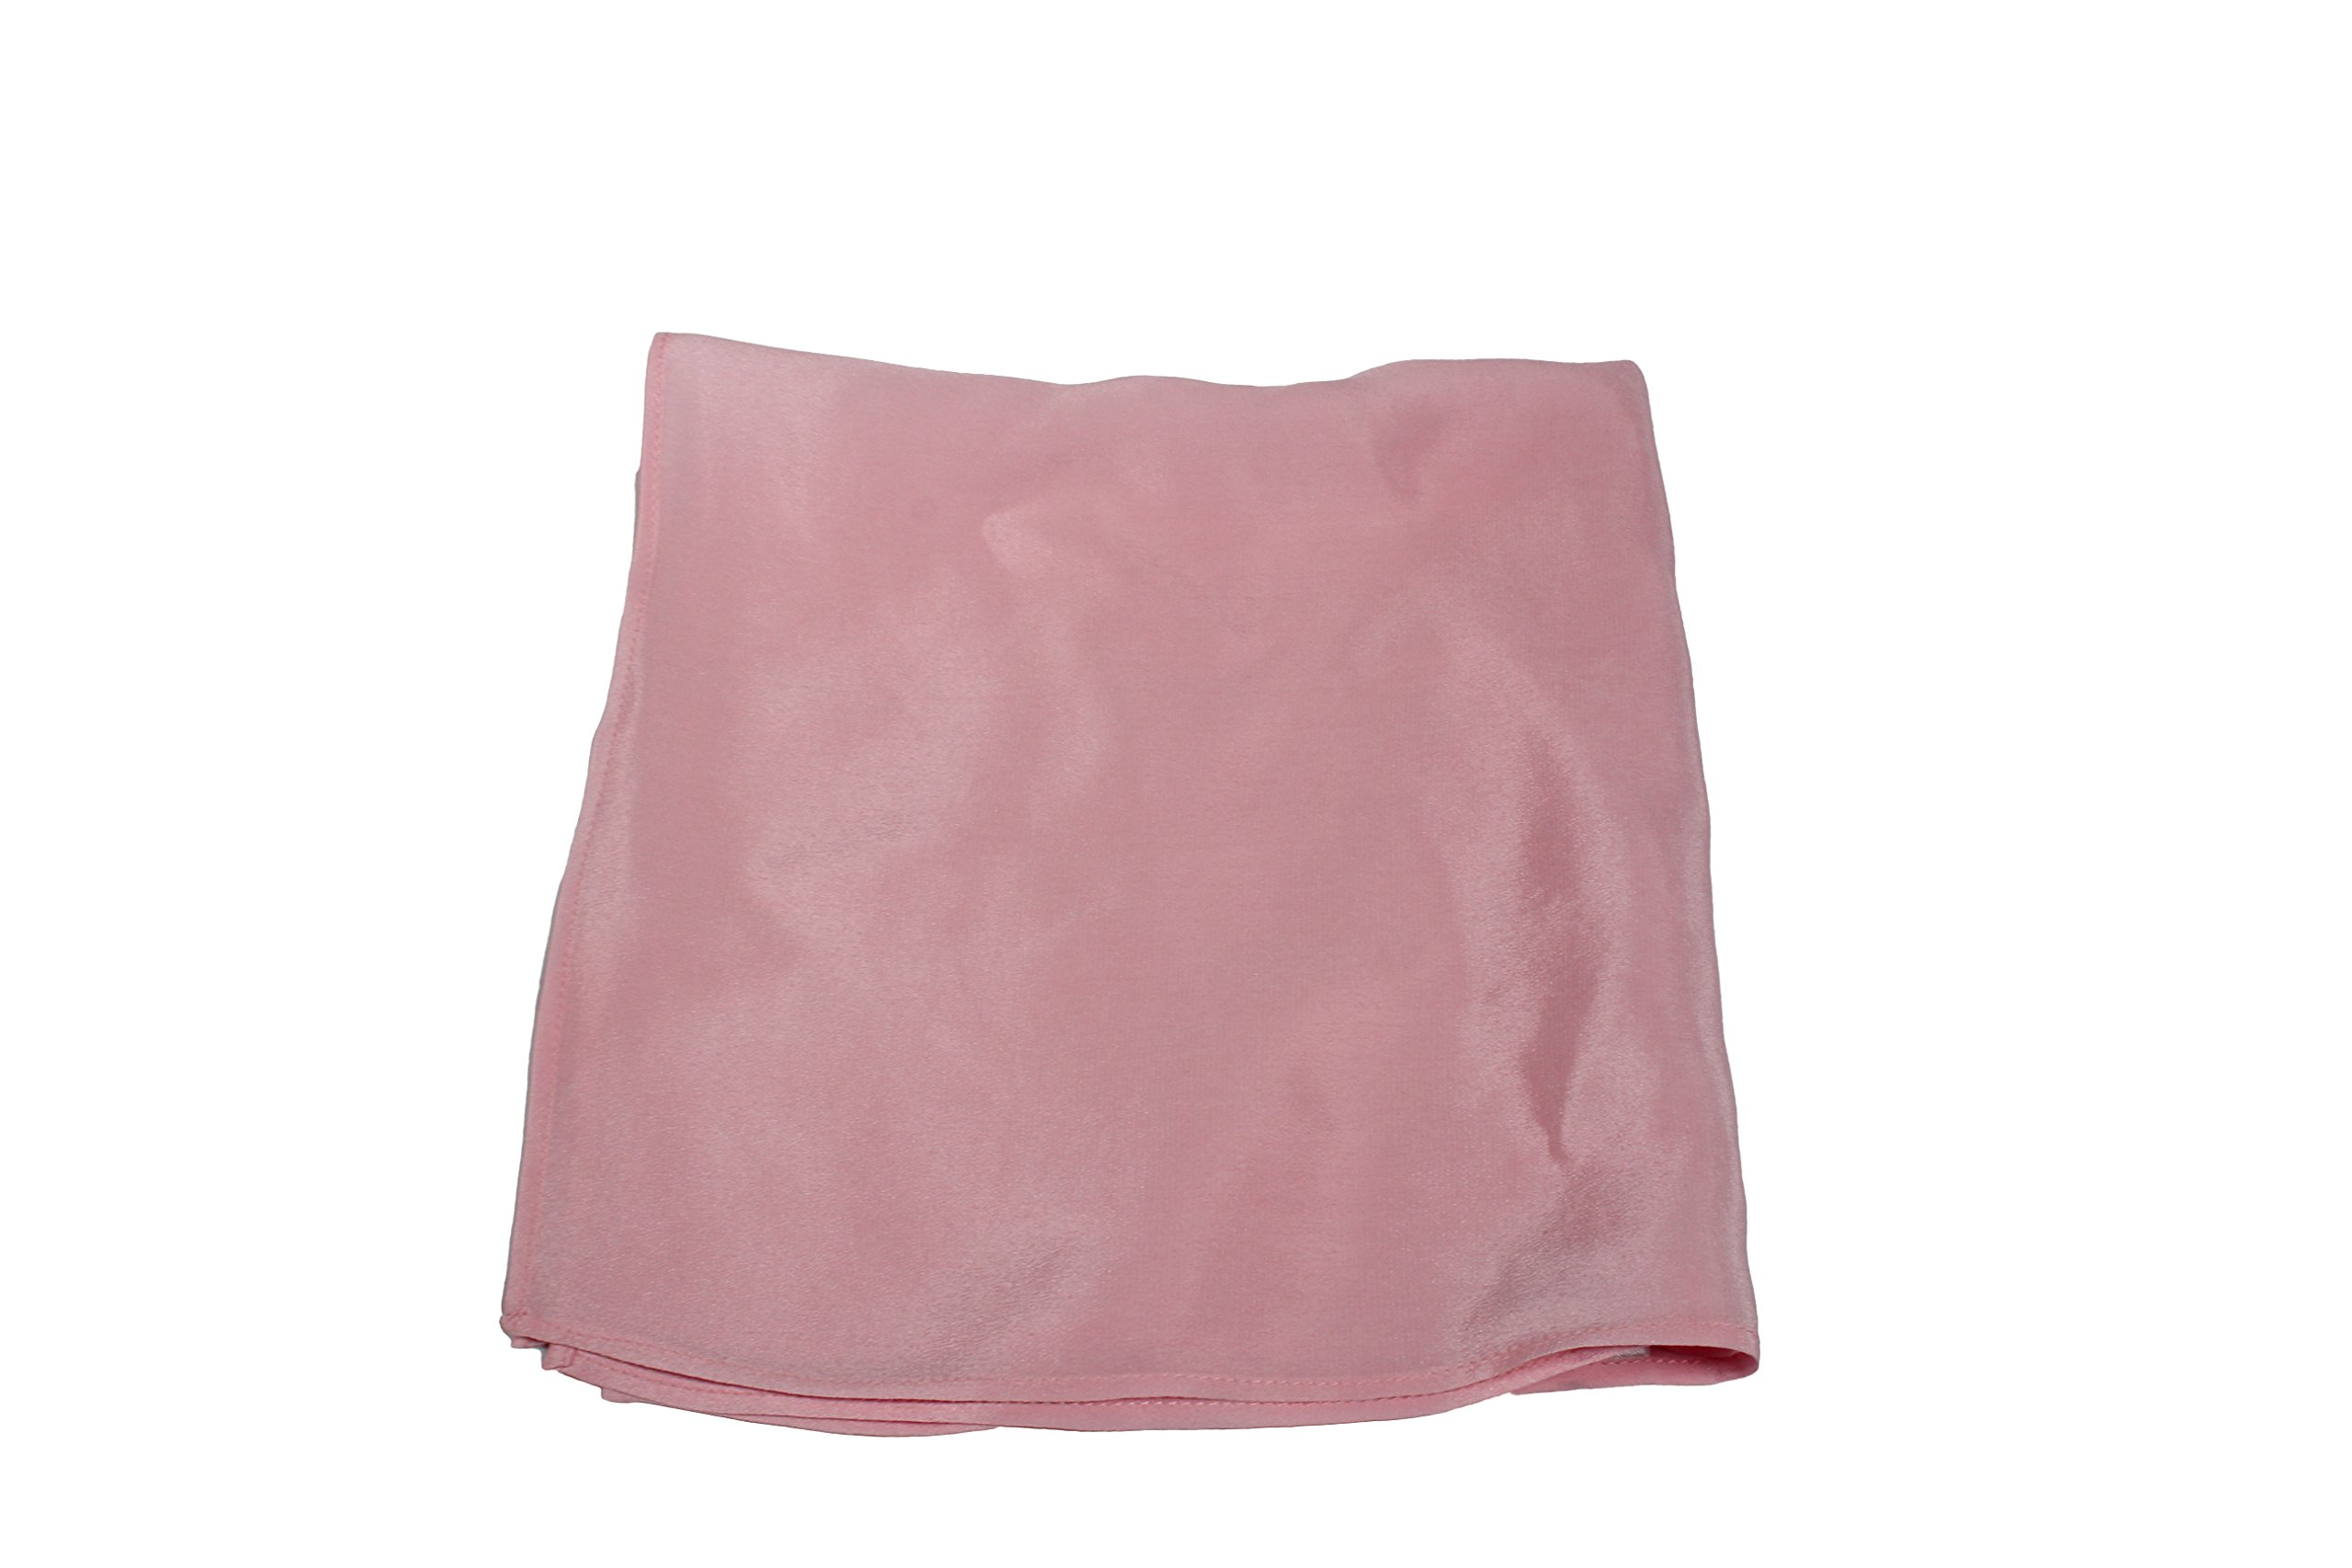 Fine Pink Silk Pocket Square - Full-Sized 16''x16'' by Royal Silk (Image #7)